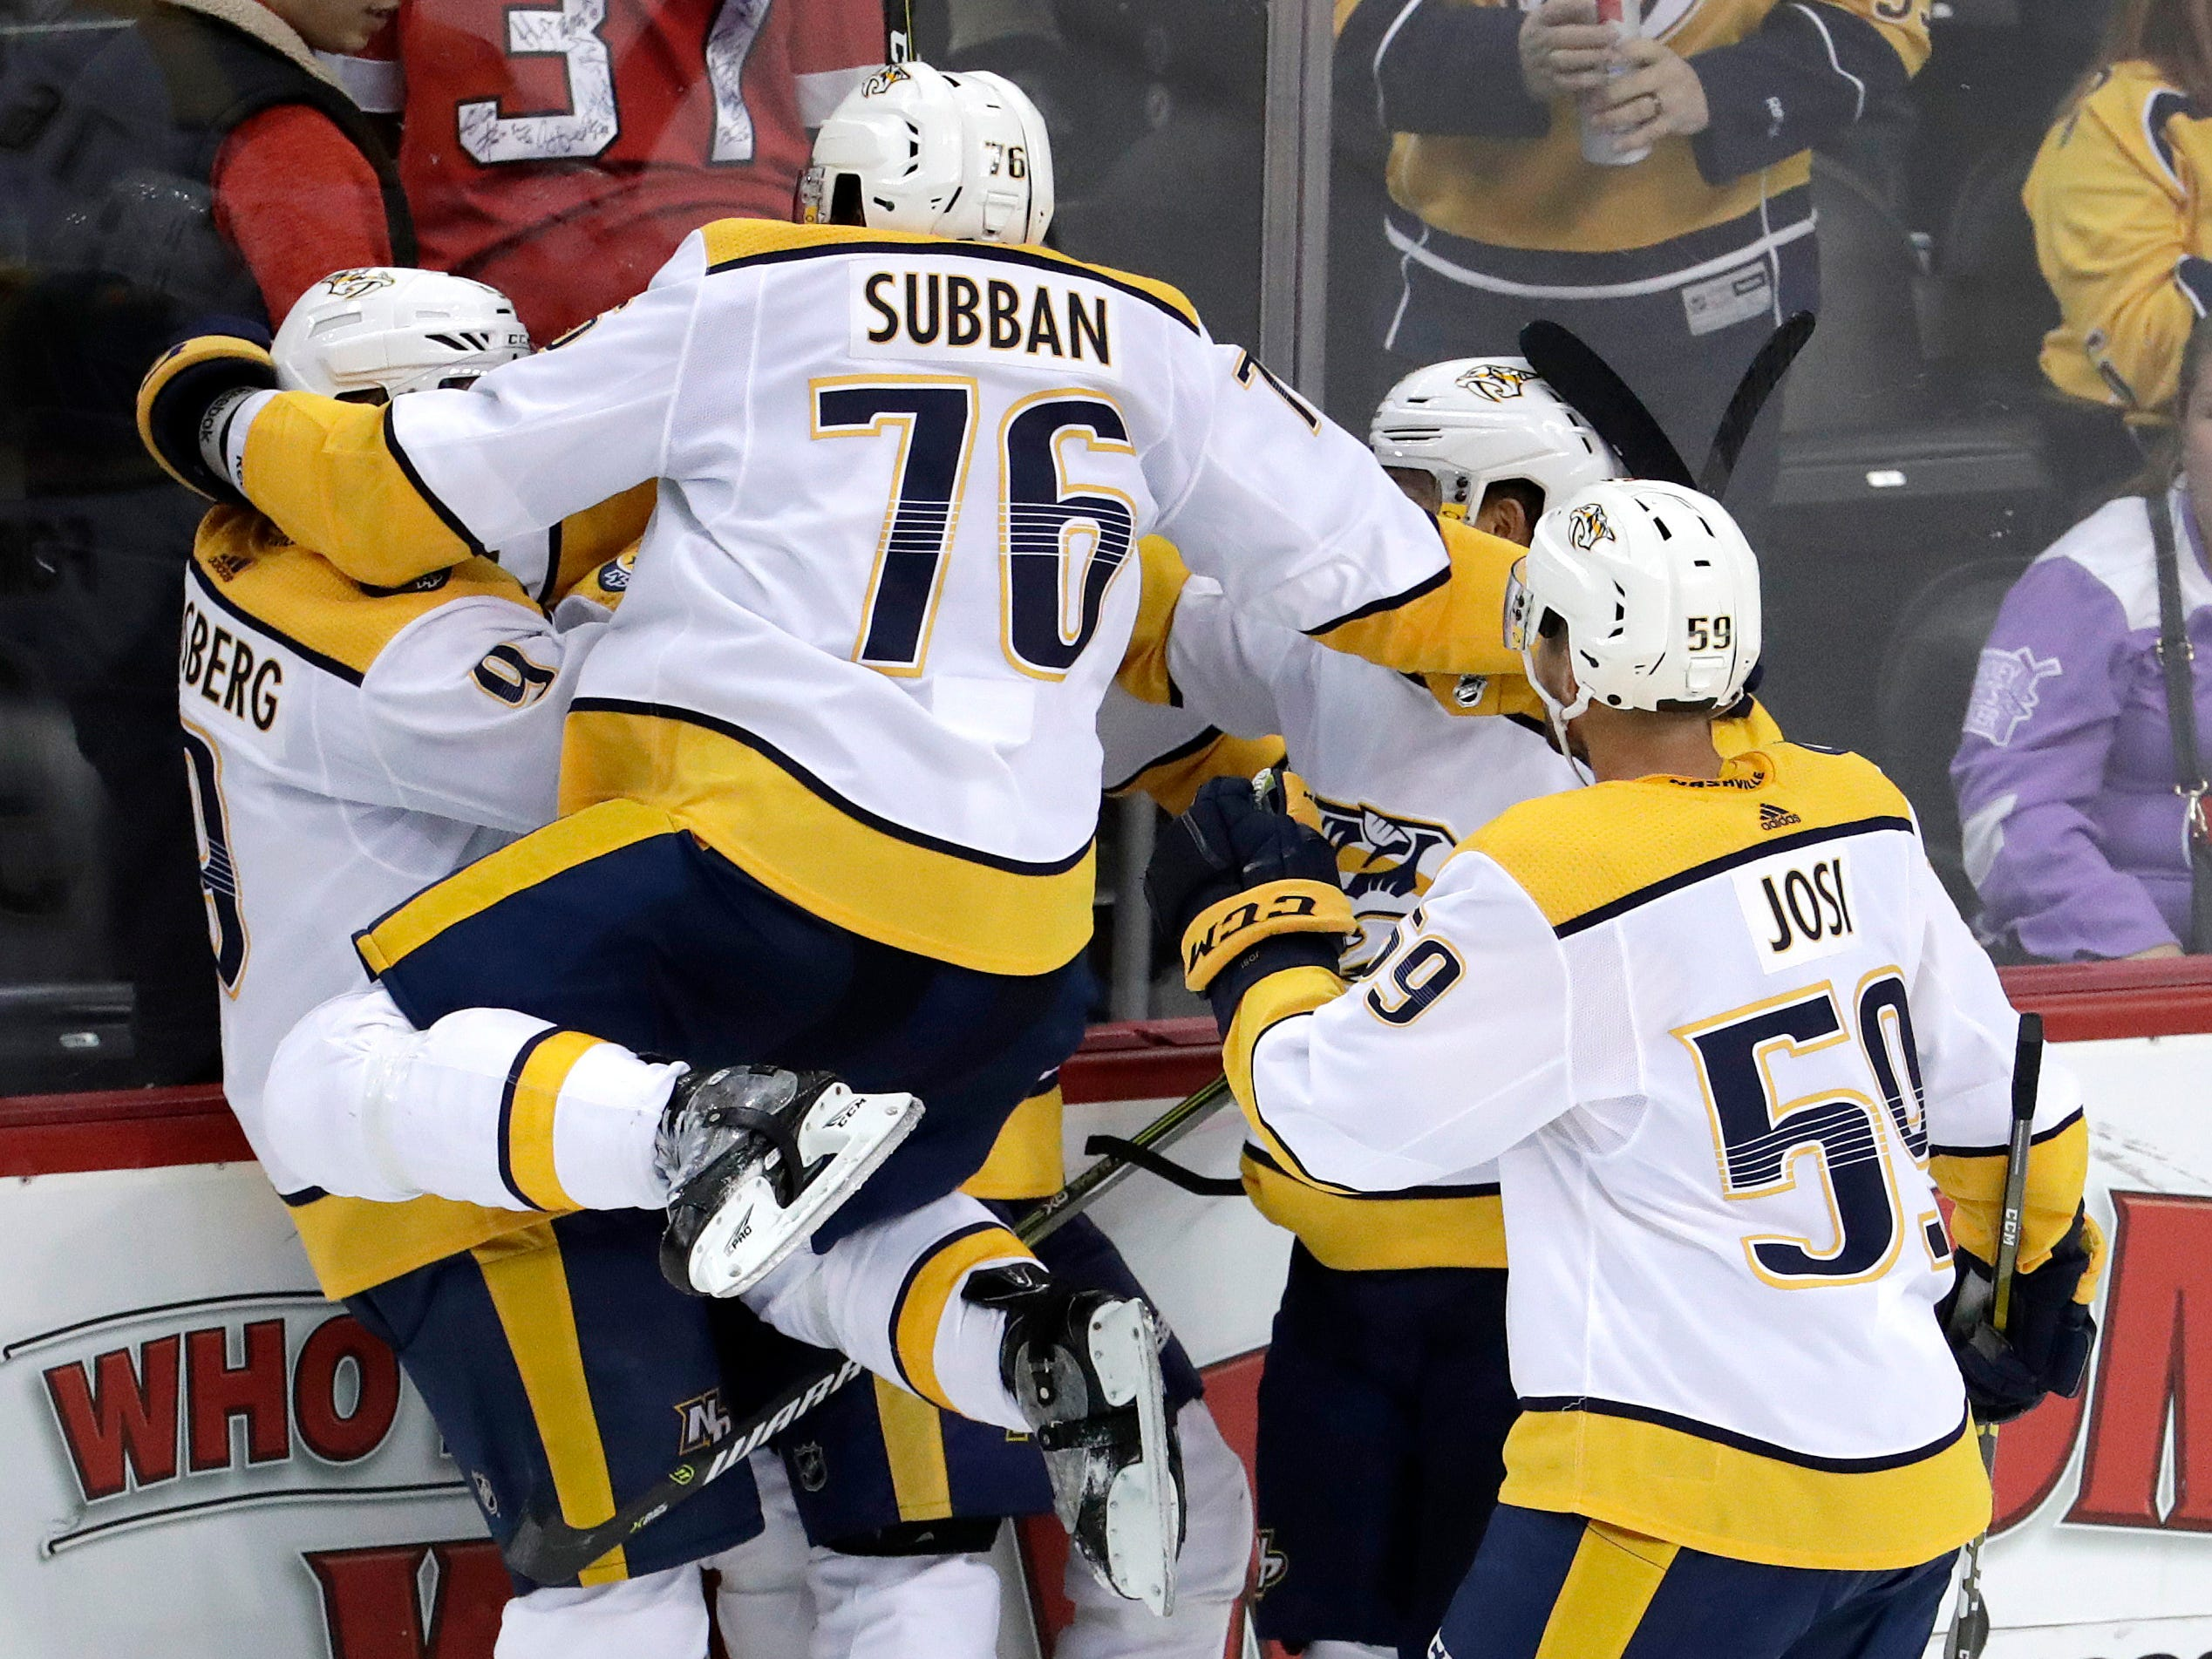 Oct. 25: Predators, 4, Devils 3 (OT) -- Nashville Predators defenseman P.K. Subban (76) jumps on teammates after Kyle Turris scored the winning goal during overtime of an NHL hockey game against the New Jersey Devils, Thursday, Oct. 25, 2018, in Newark, N.J.